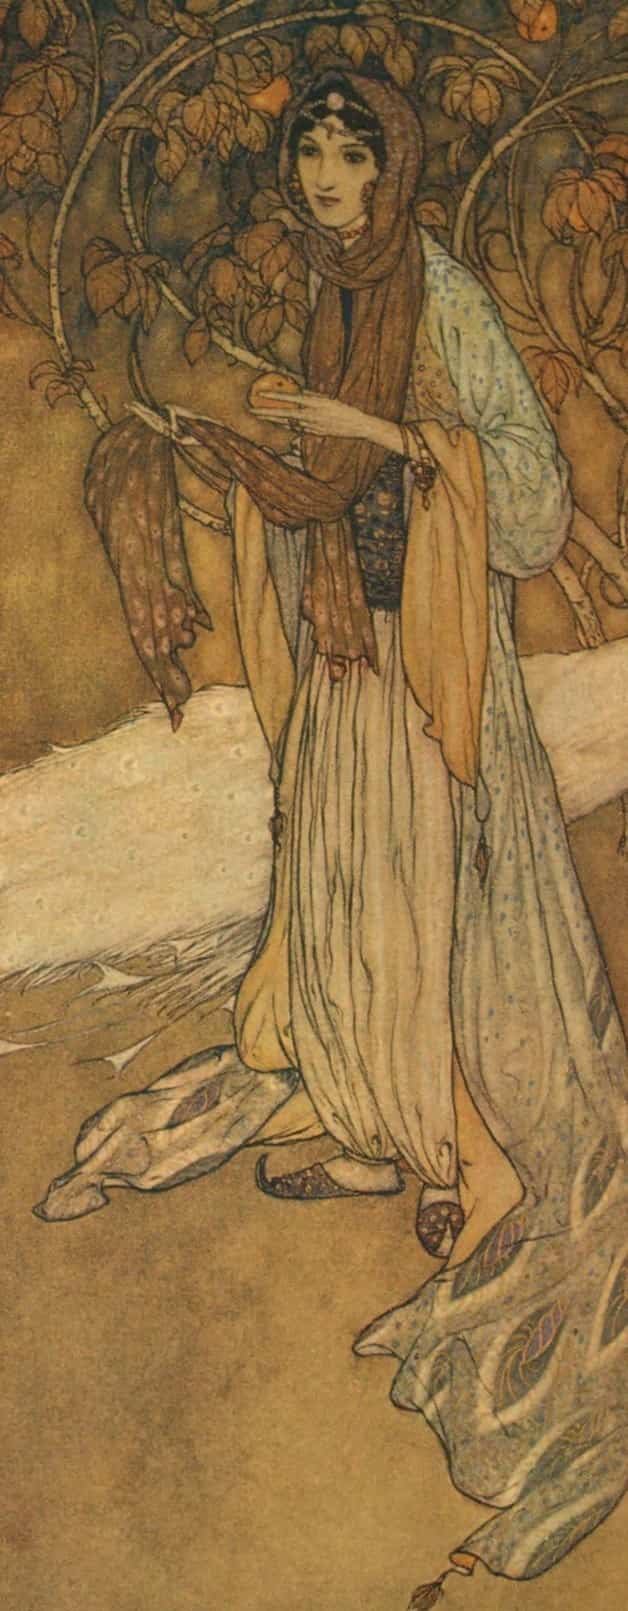 Image of Princess Scheherazade from Arabian Nights by Edmund Dulac